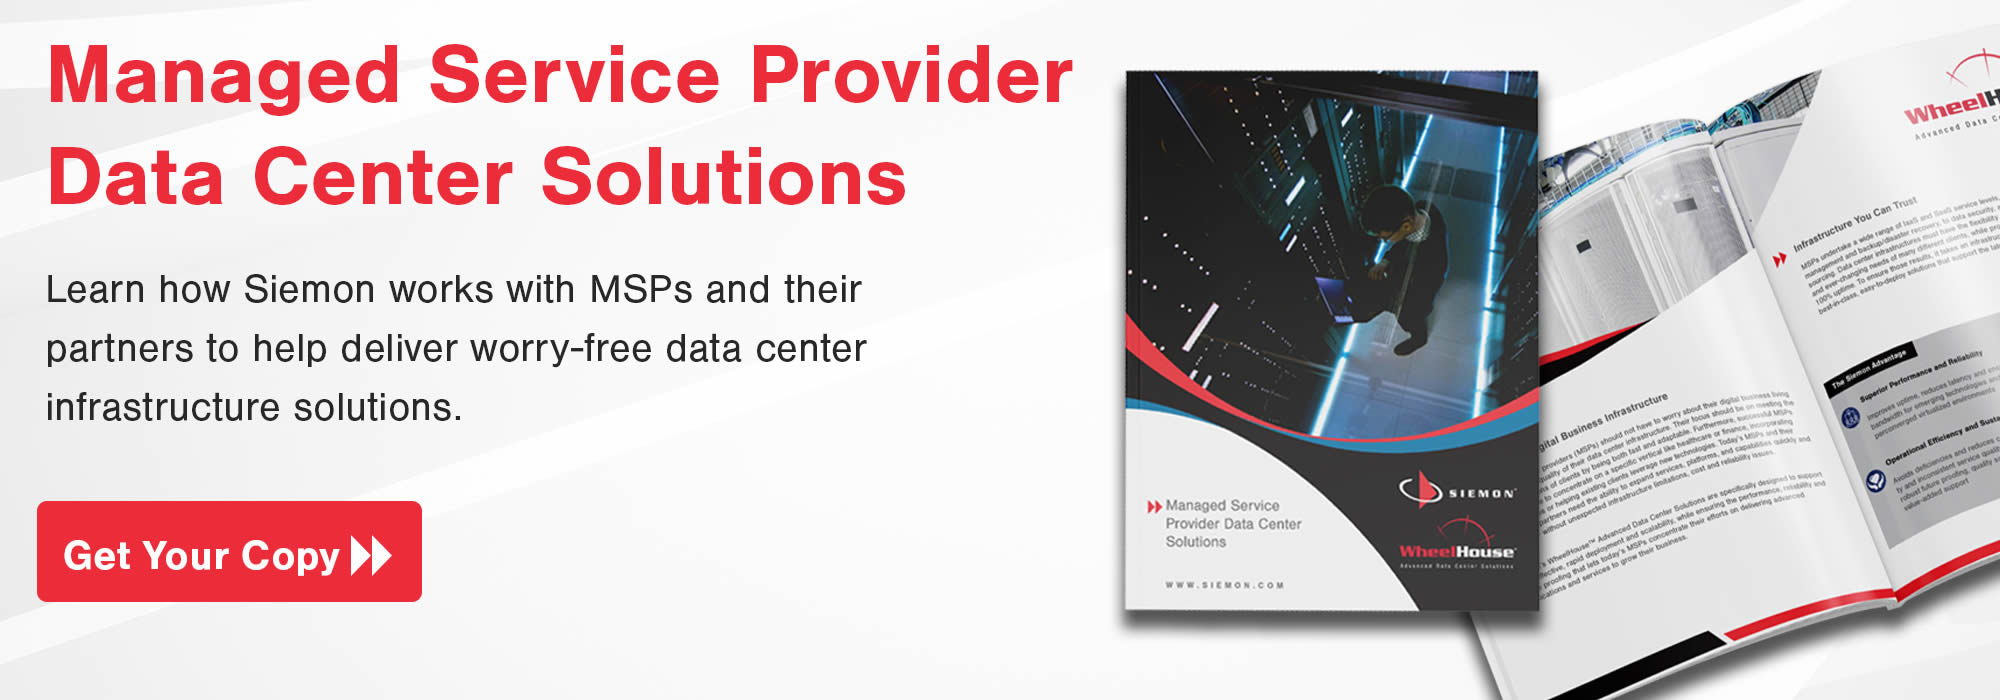 Managed Service Provider Guide